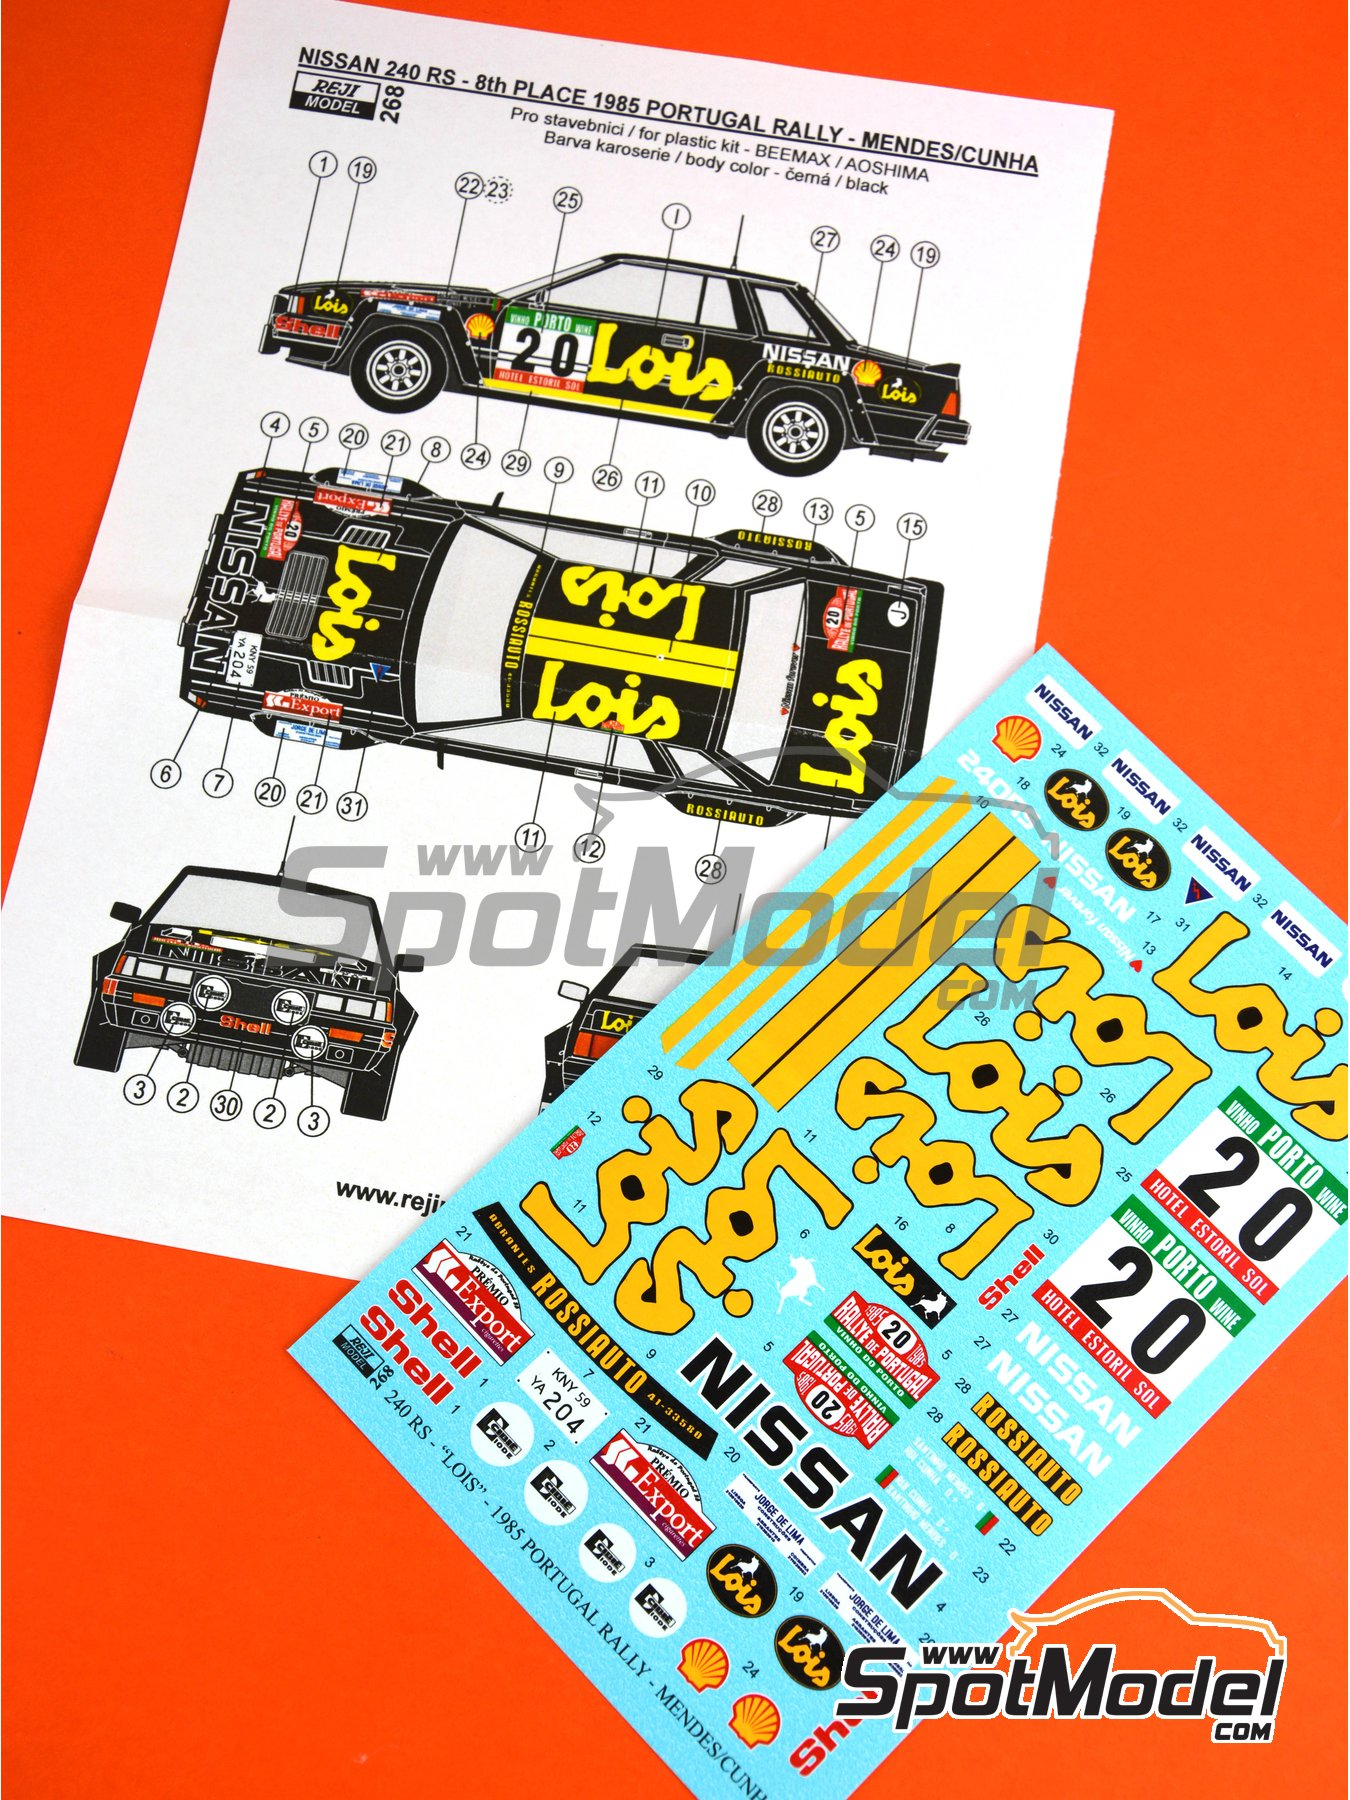 Nissan 240RS BS110 Grupo B Lois - Rally de Portugal 1985 | Decoración en escala 1/24 fabricado por Reji Model (ref. REJI-268) image